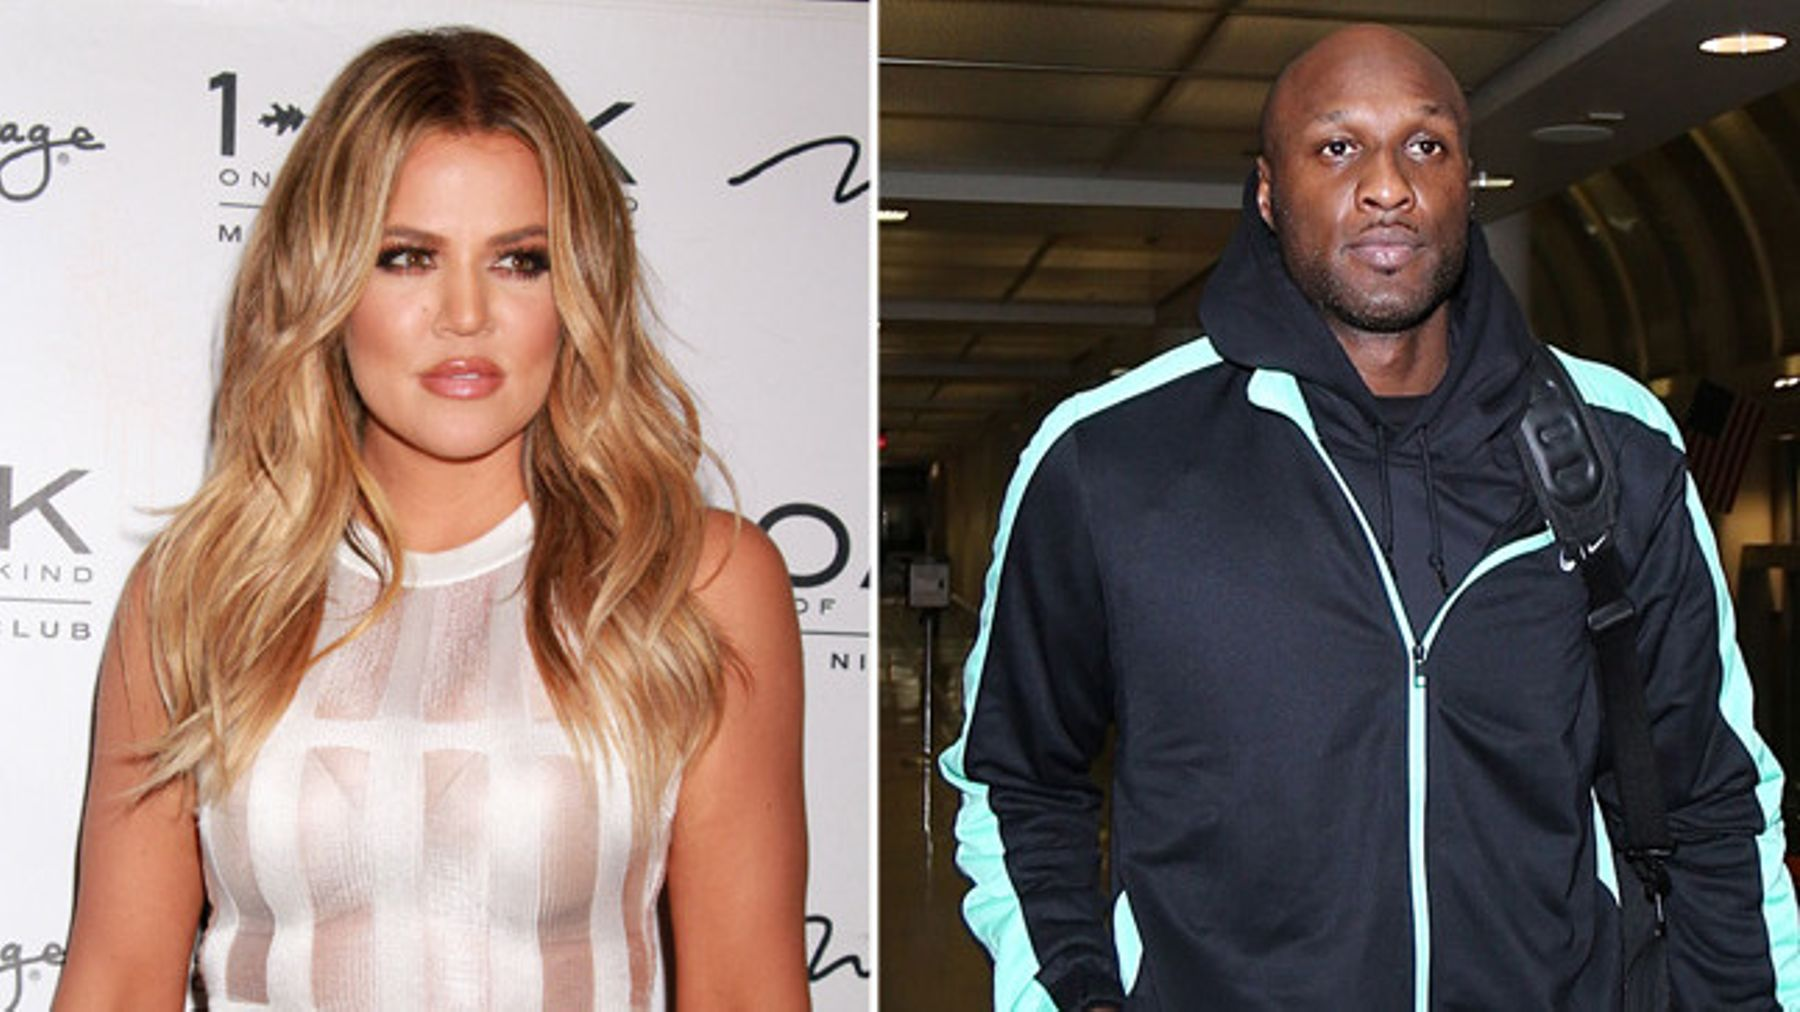 Khloe Kardashian 'crushed' as Lamar Odom gets back with ex